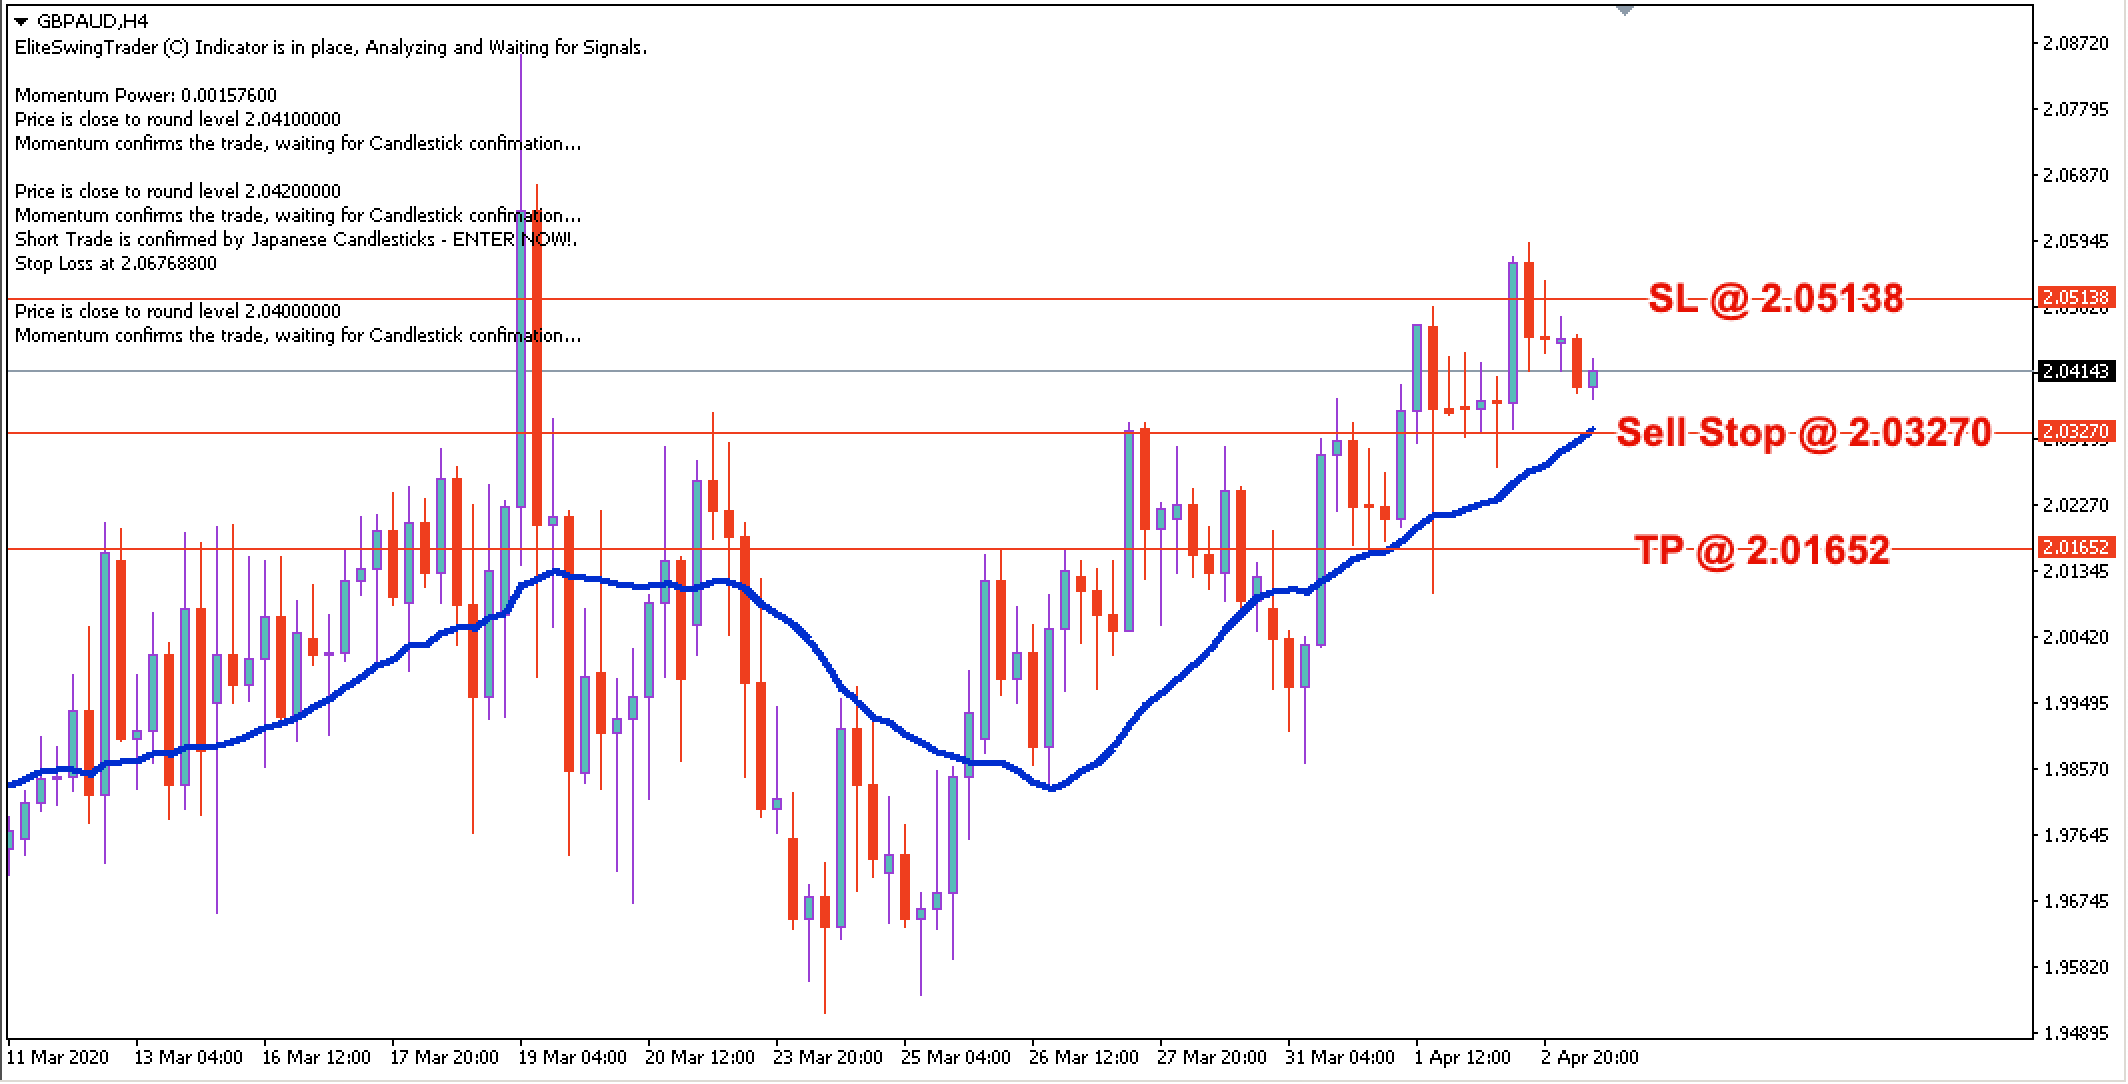 GBP/AUD Daily Price Forecast – 3rd April 2020